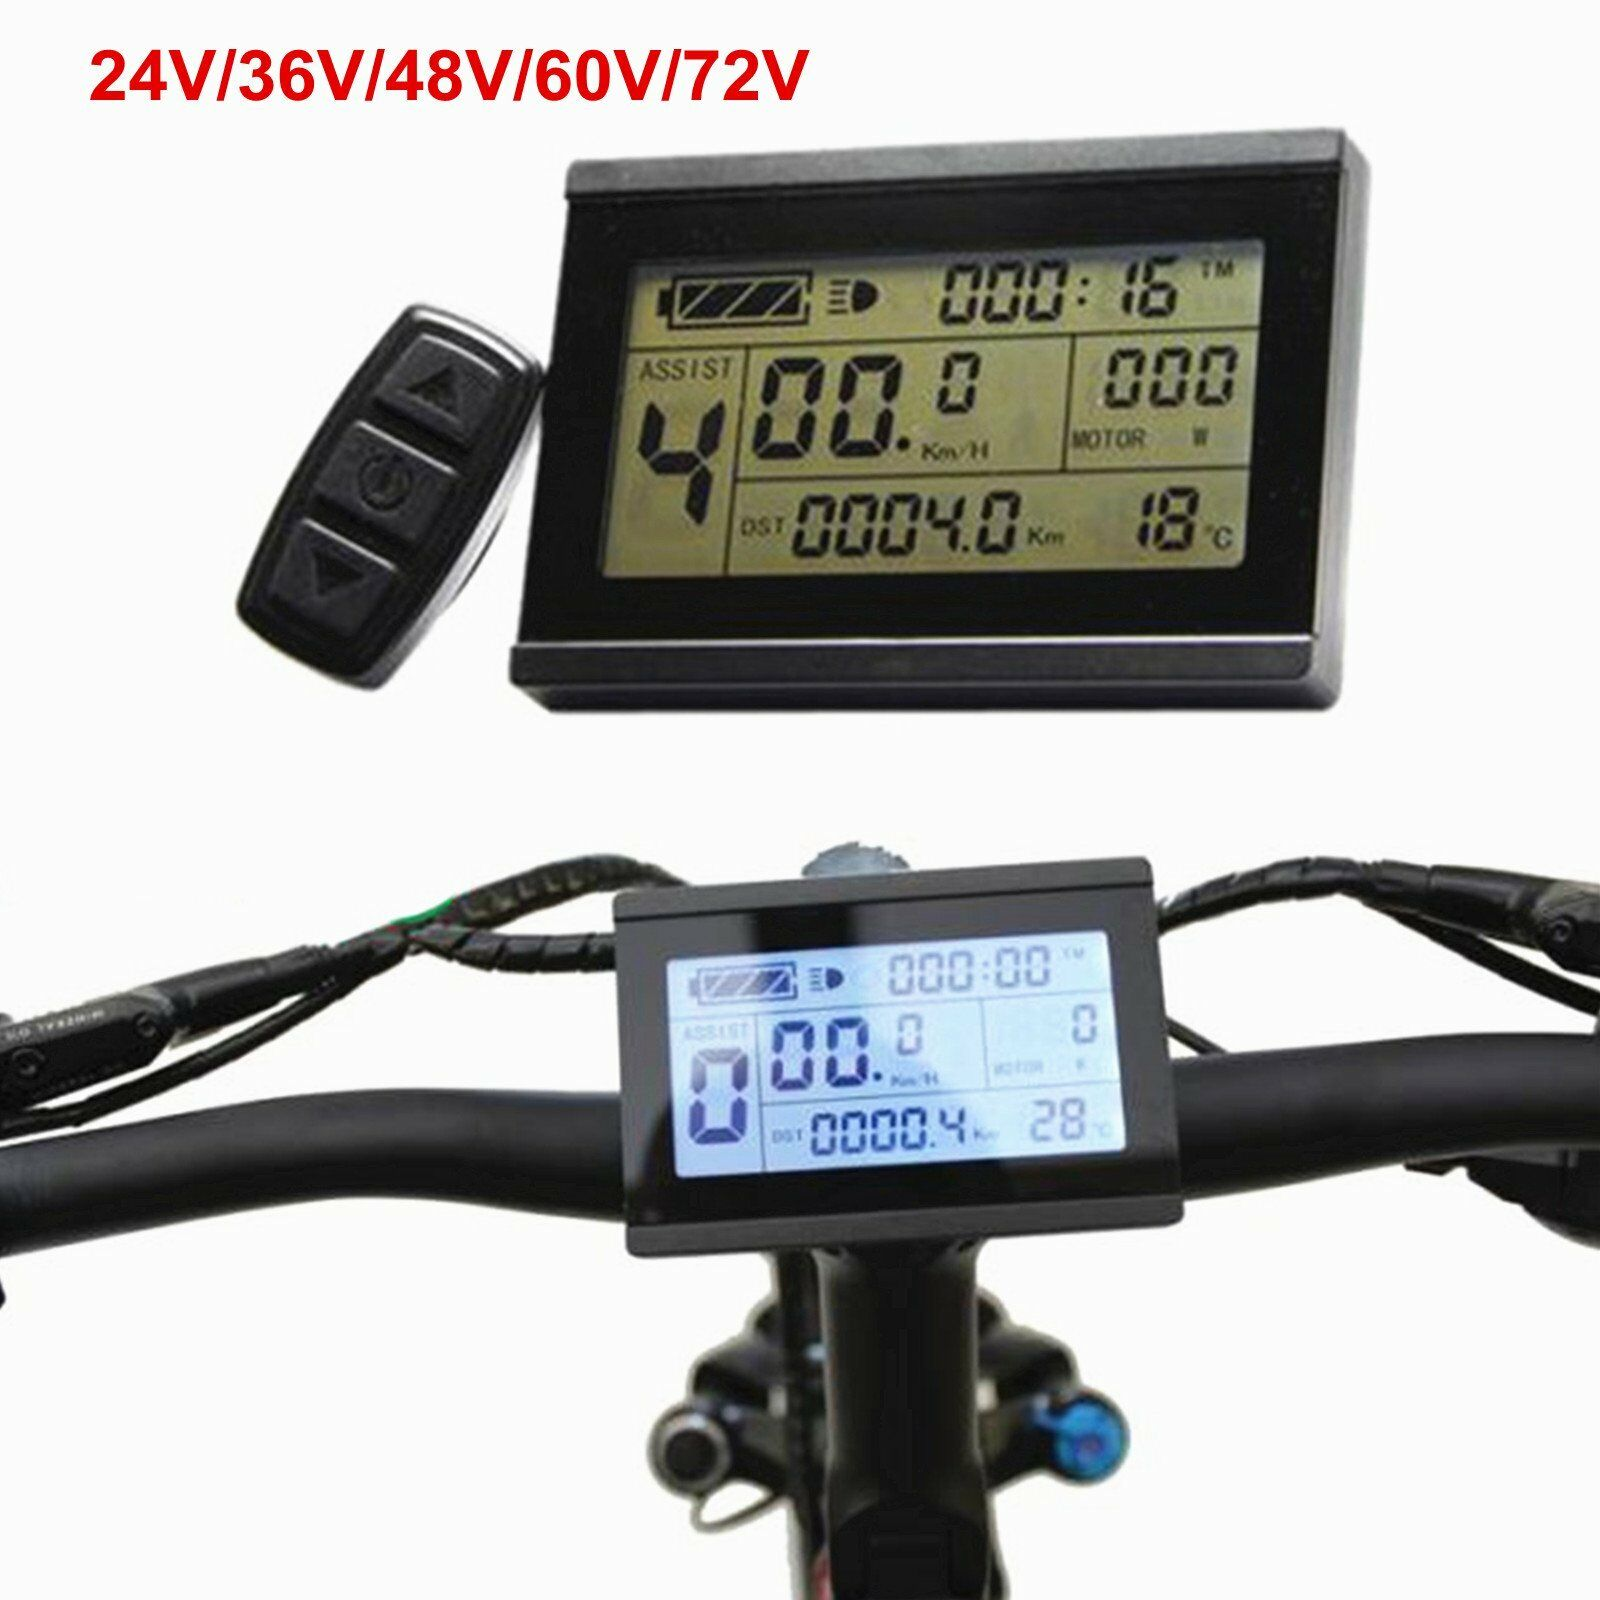 24-48V  Risunmotor LCD3 Display Meter Control Panel For e-Bike Electric Bicycle  no.1 online